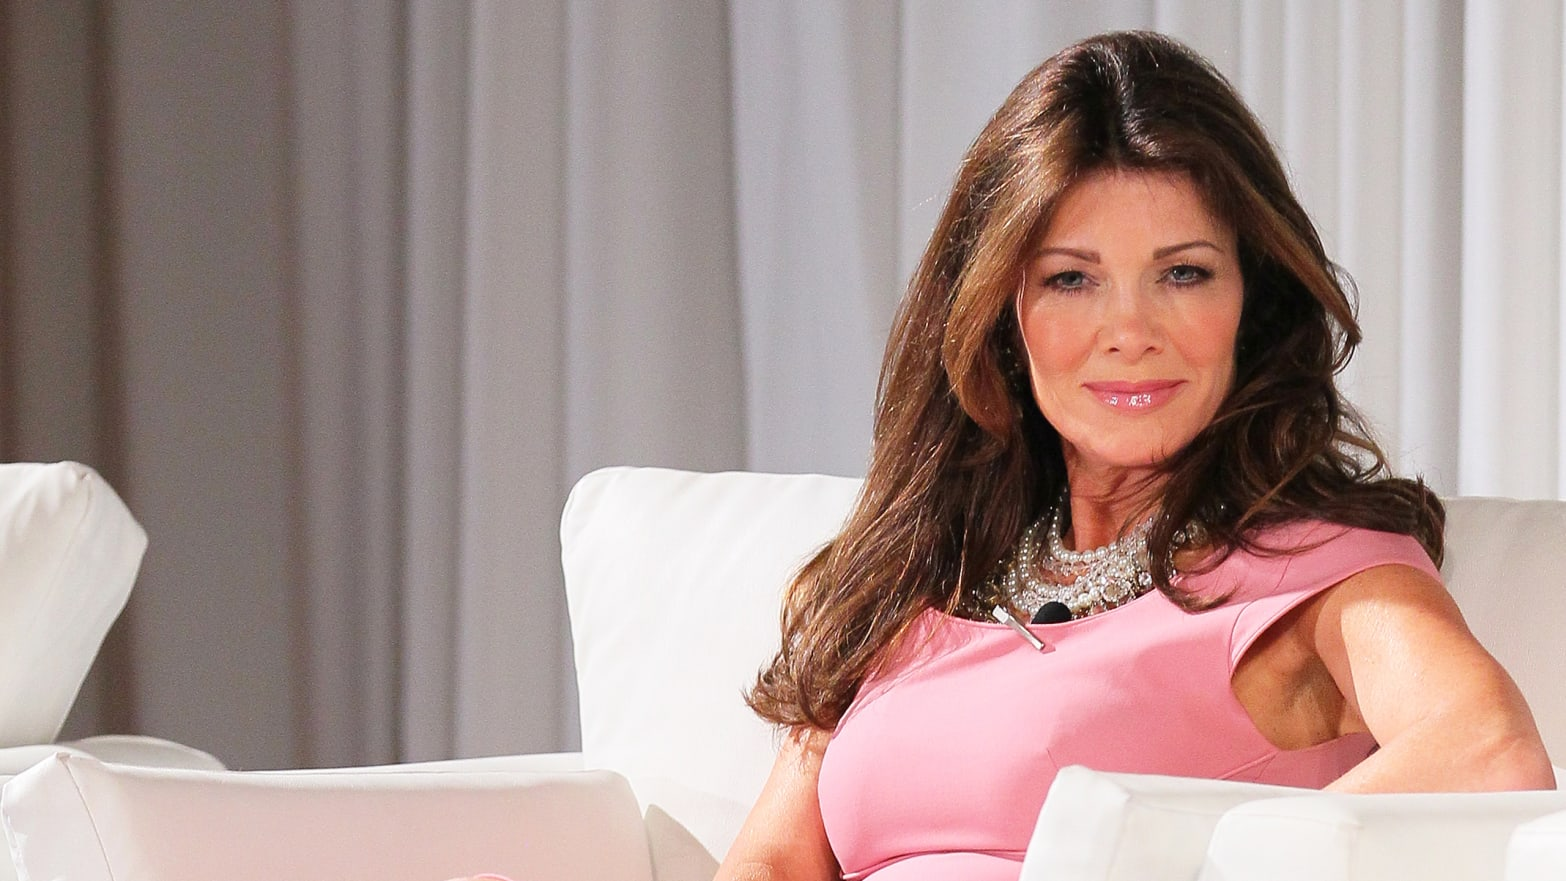 Lisa Vanderpump nude (52 foto and video), Pussy, Hot, Selfie, underwear 2018